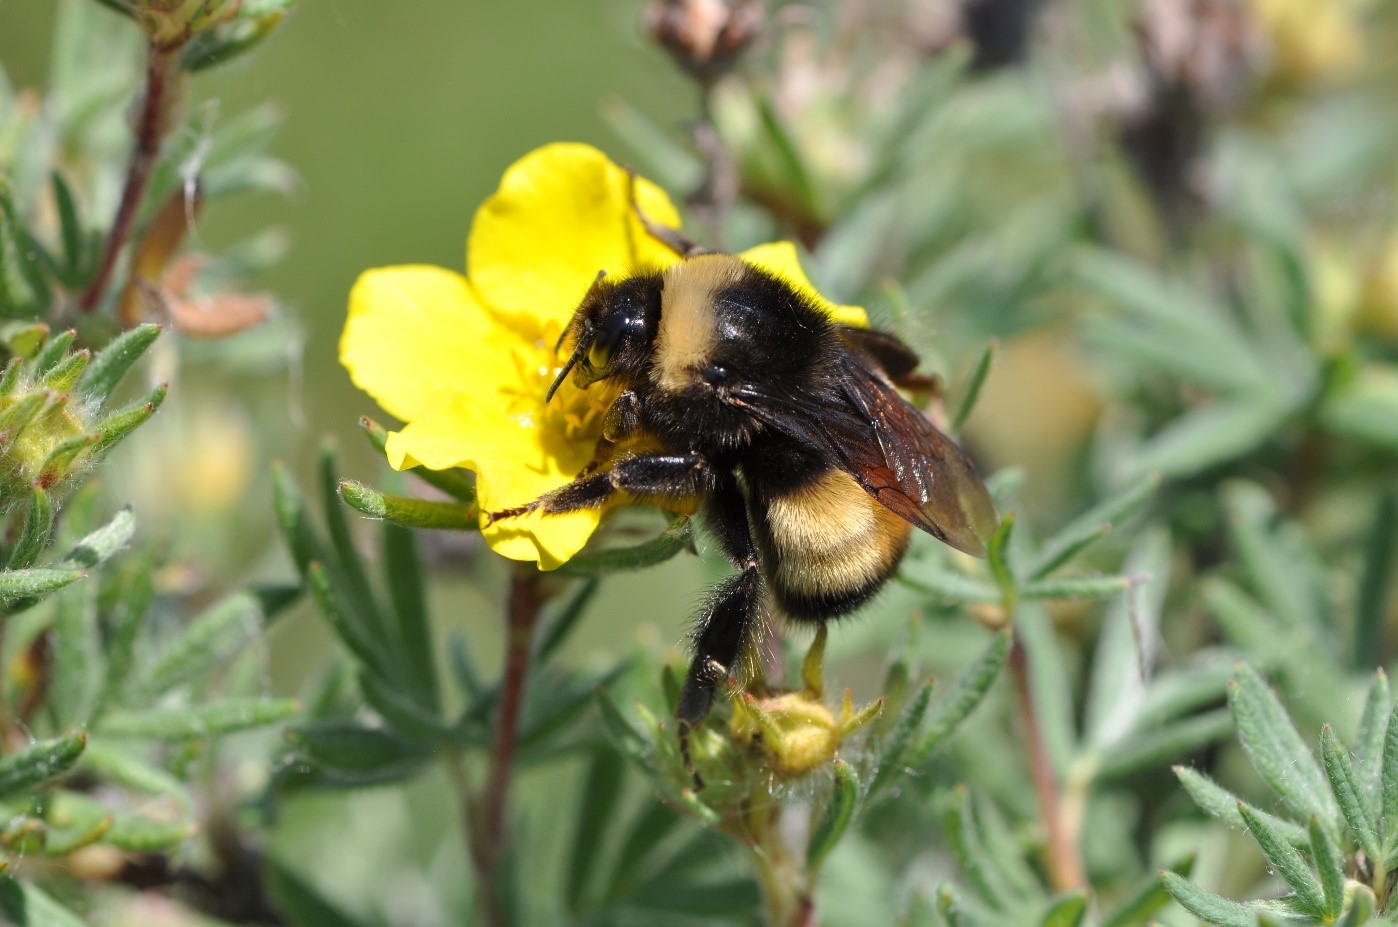 CBC: Albertans snap photos of bumblebees for North America-wide study